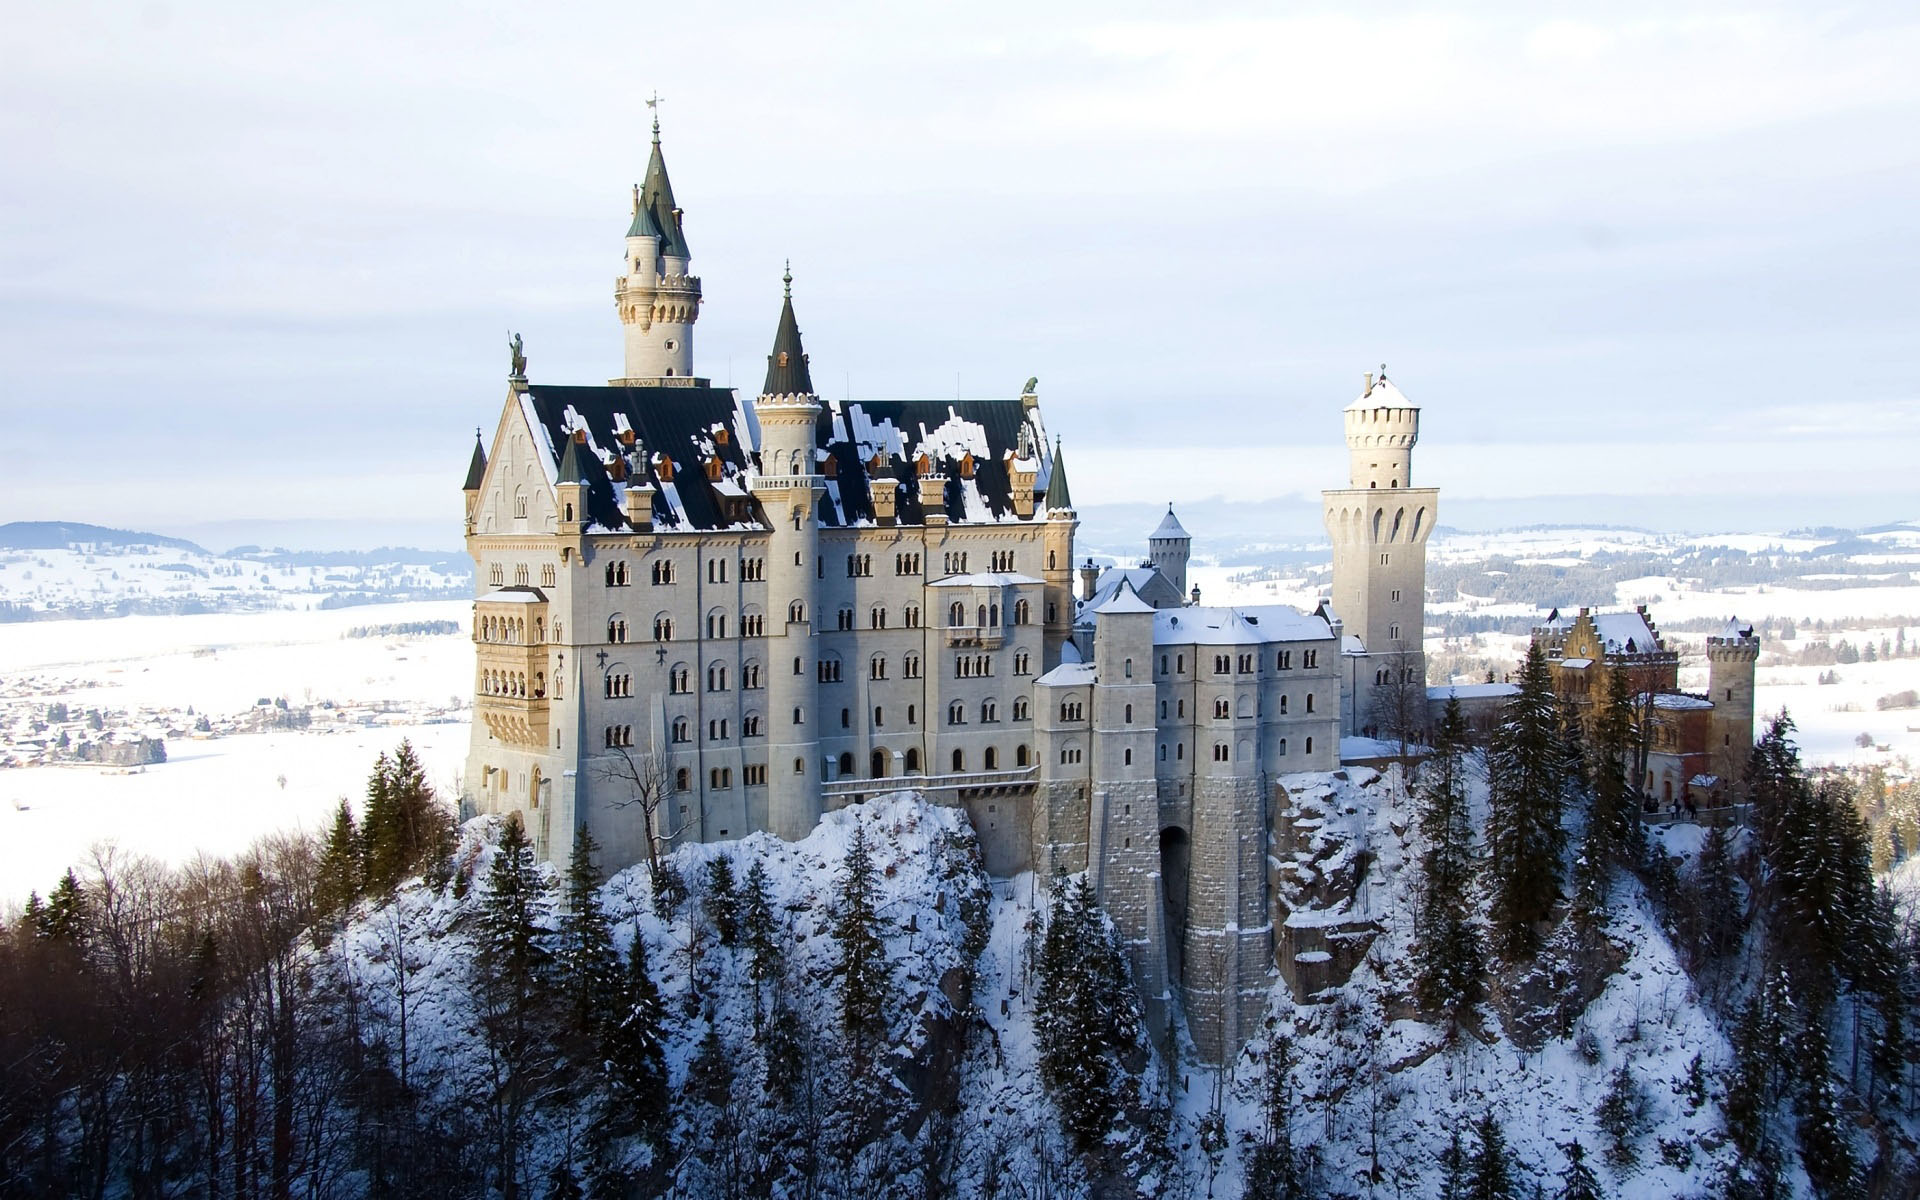 A photo of a castle high atop a snowy mountain surrounded by pine trees.